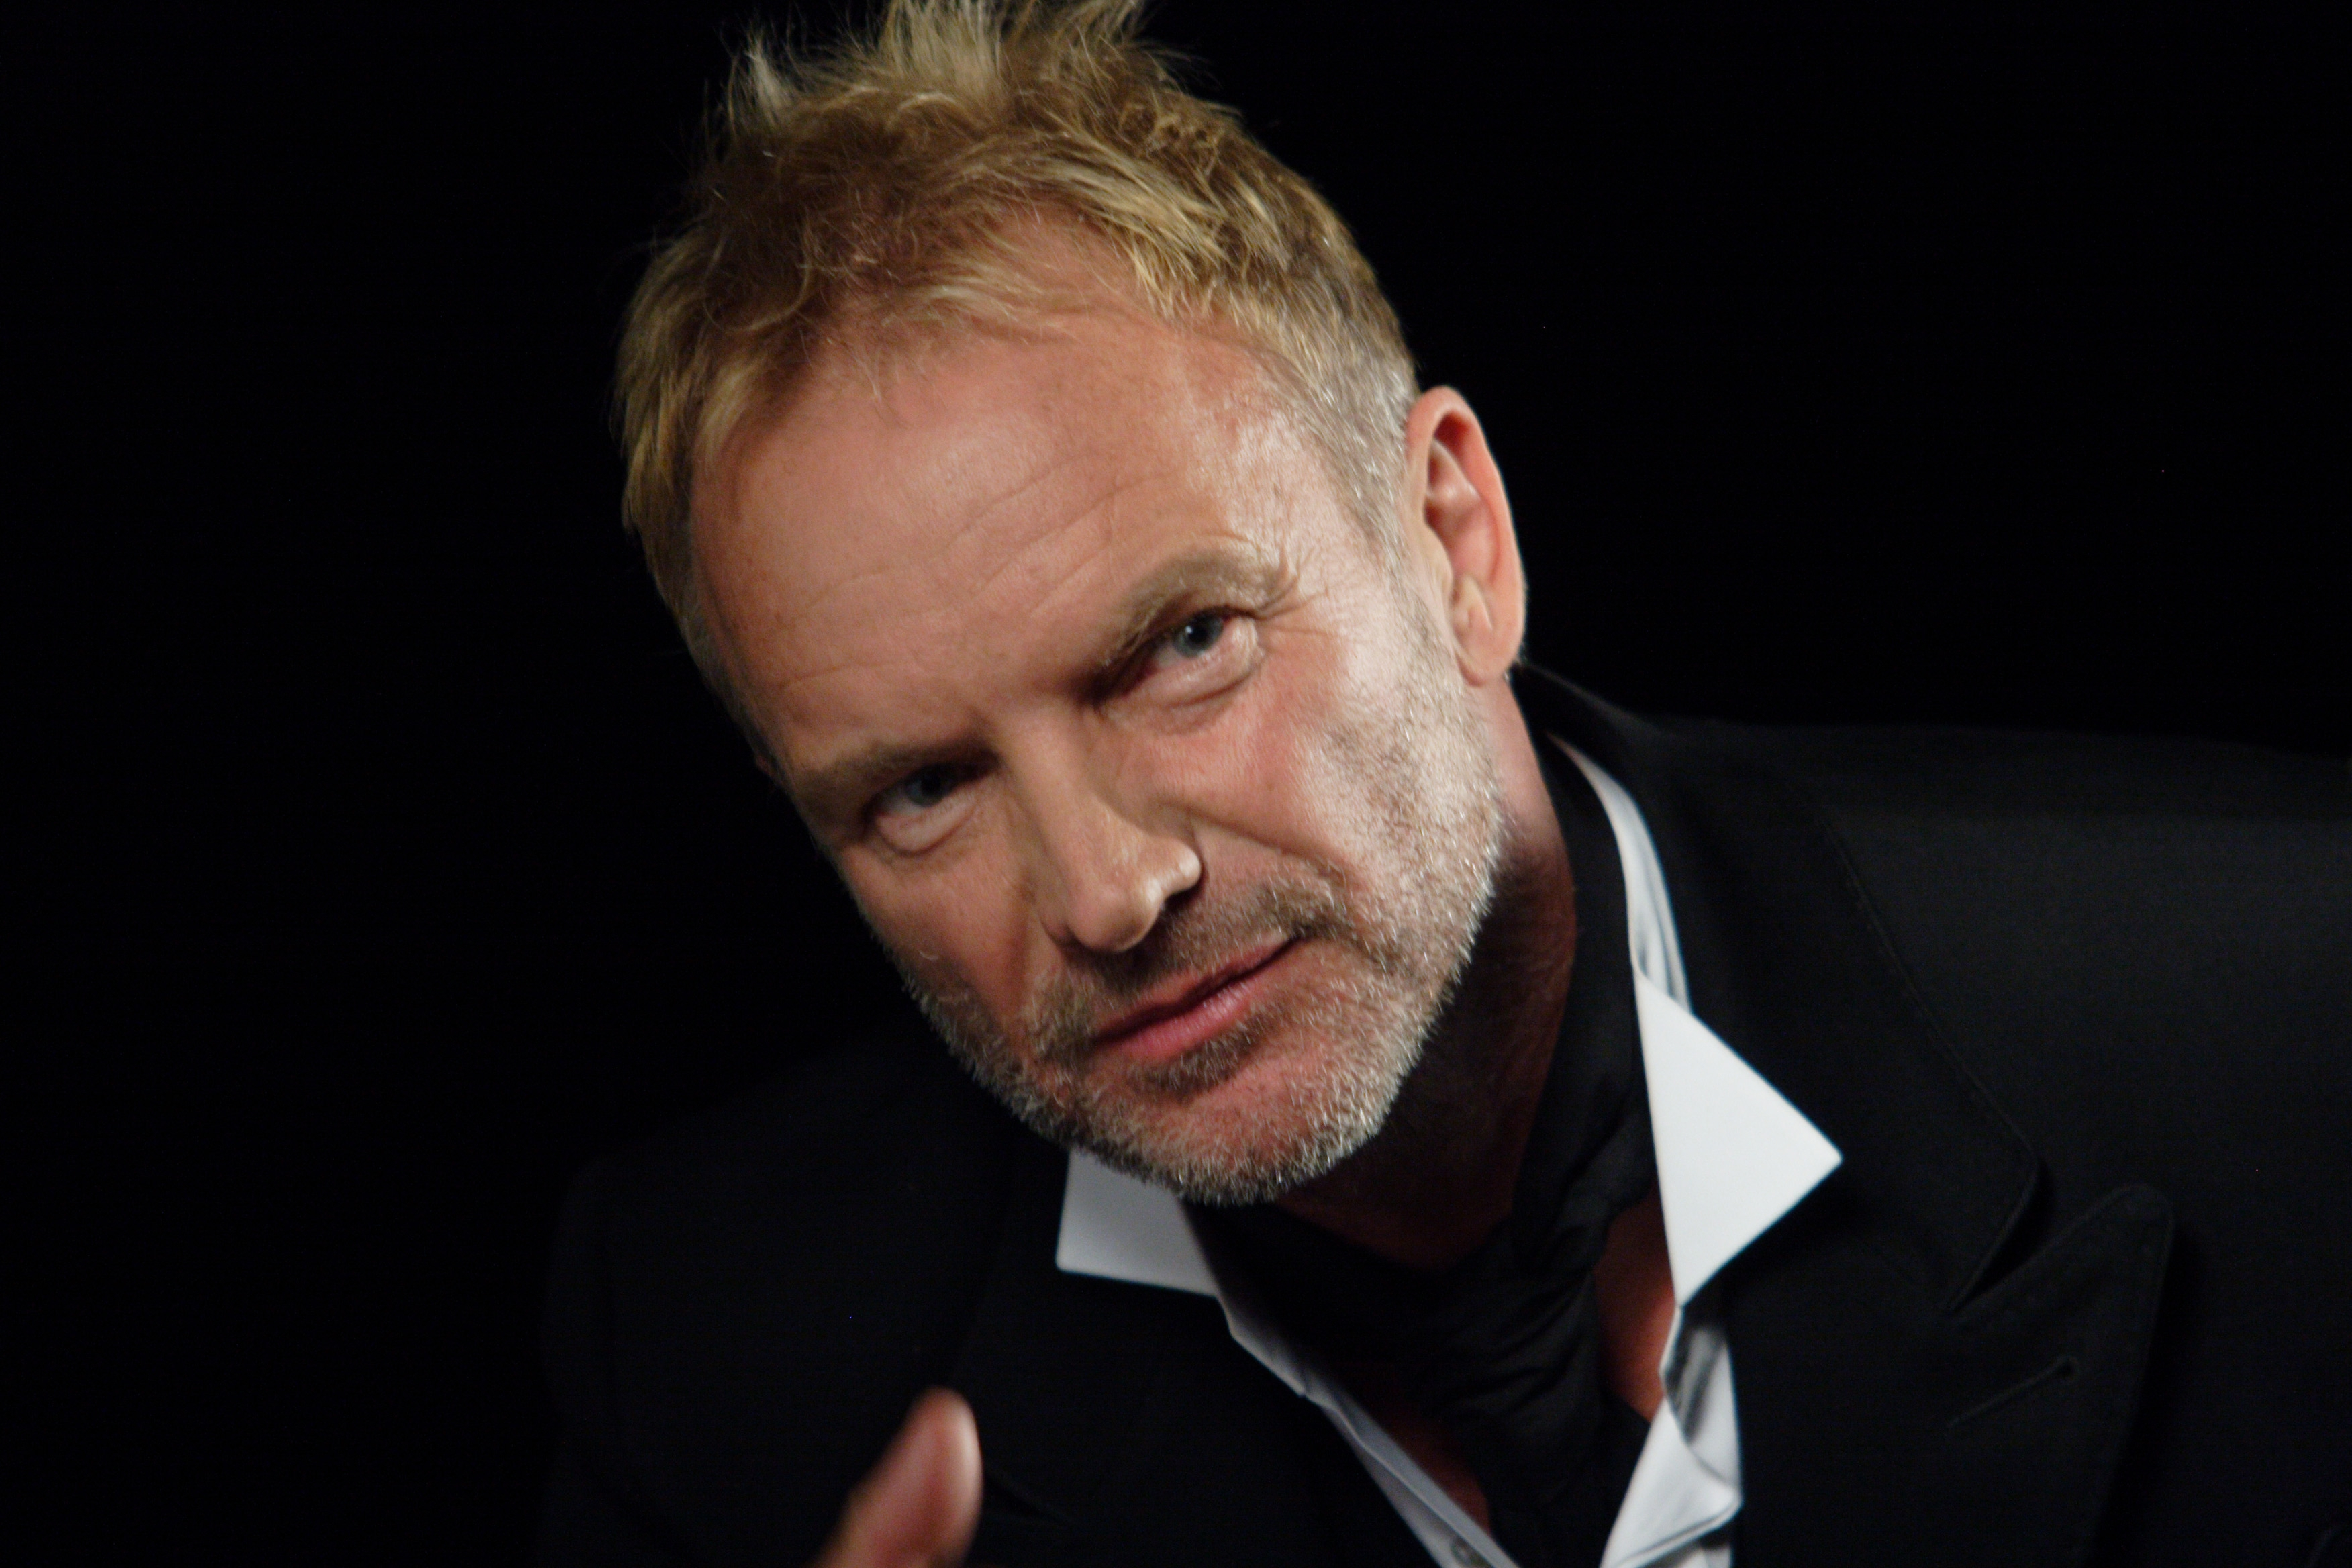 sting Sting, born gordon sumner, is an english singer, songwriter and philanthropist best known as the frontman of the police.